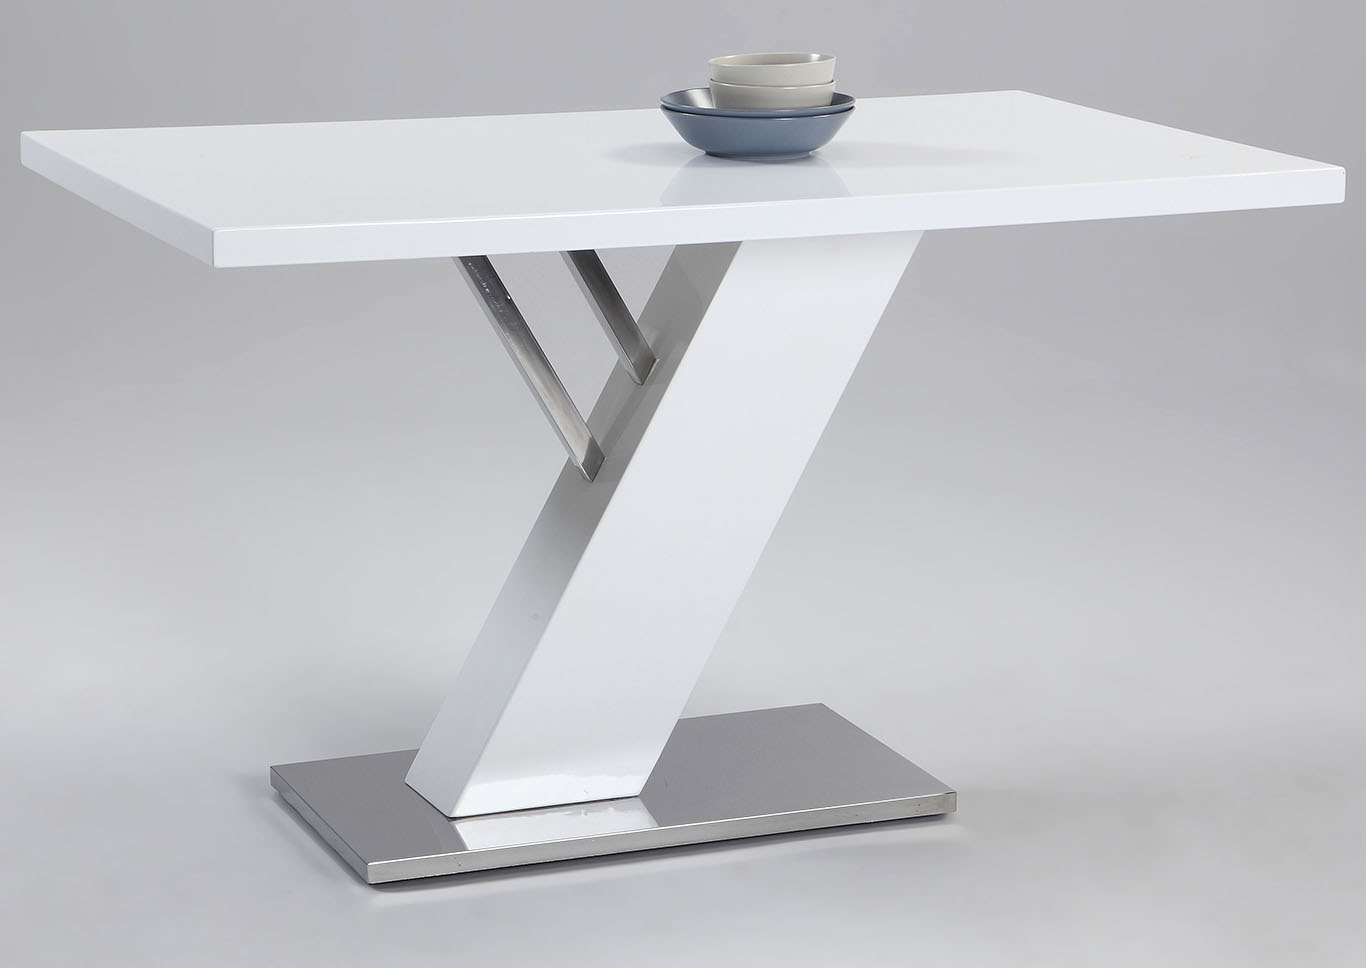 Squan Furniture Linden White Dining Table For Recent Linden Round Pedestal Dining Tables (View 21 of 25)